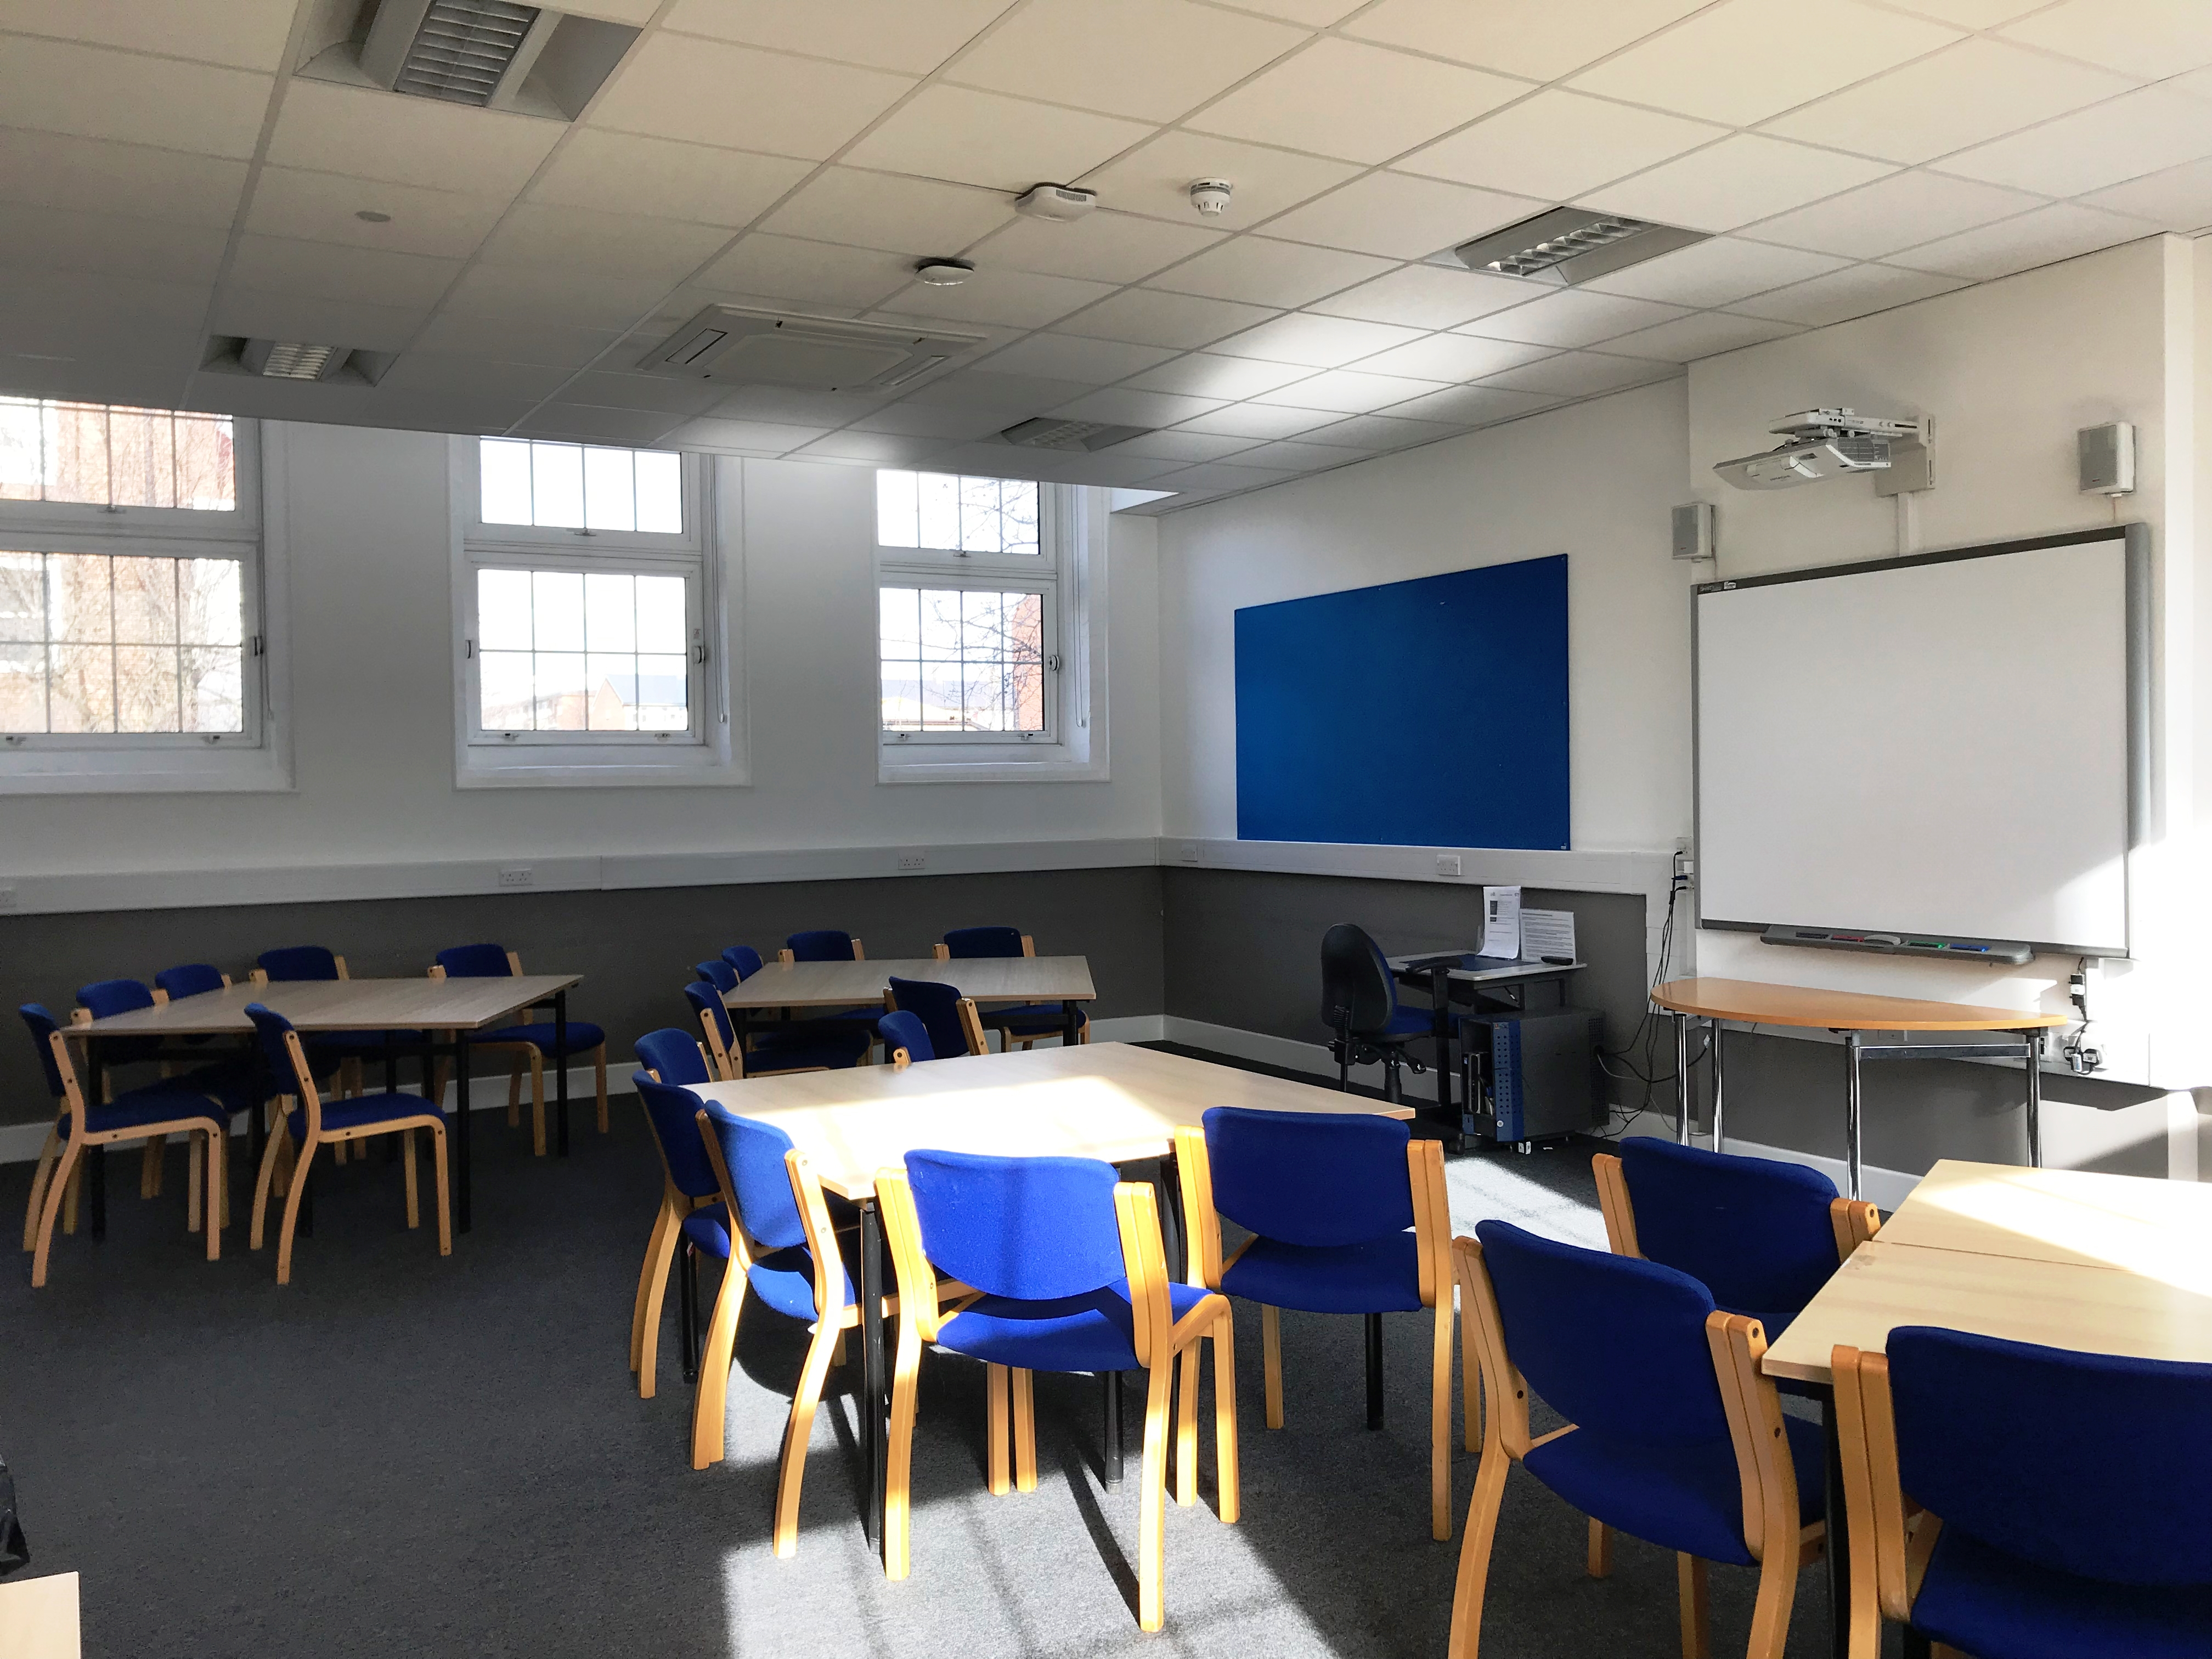 room 107 - classroom two